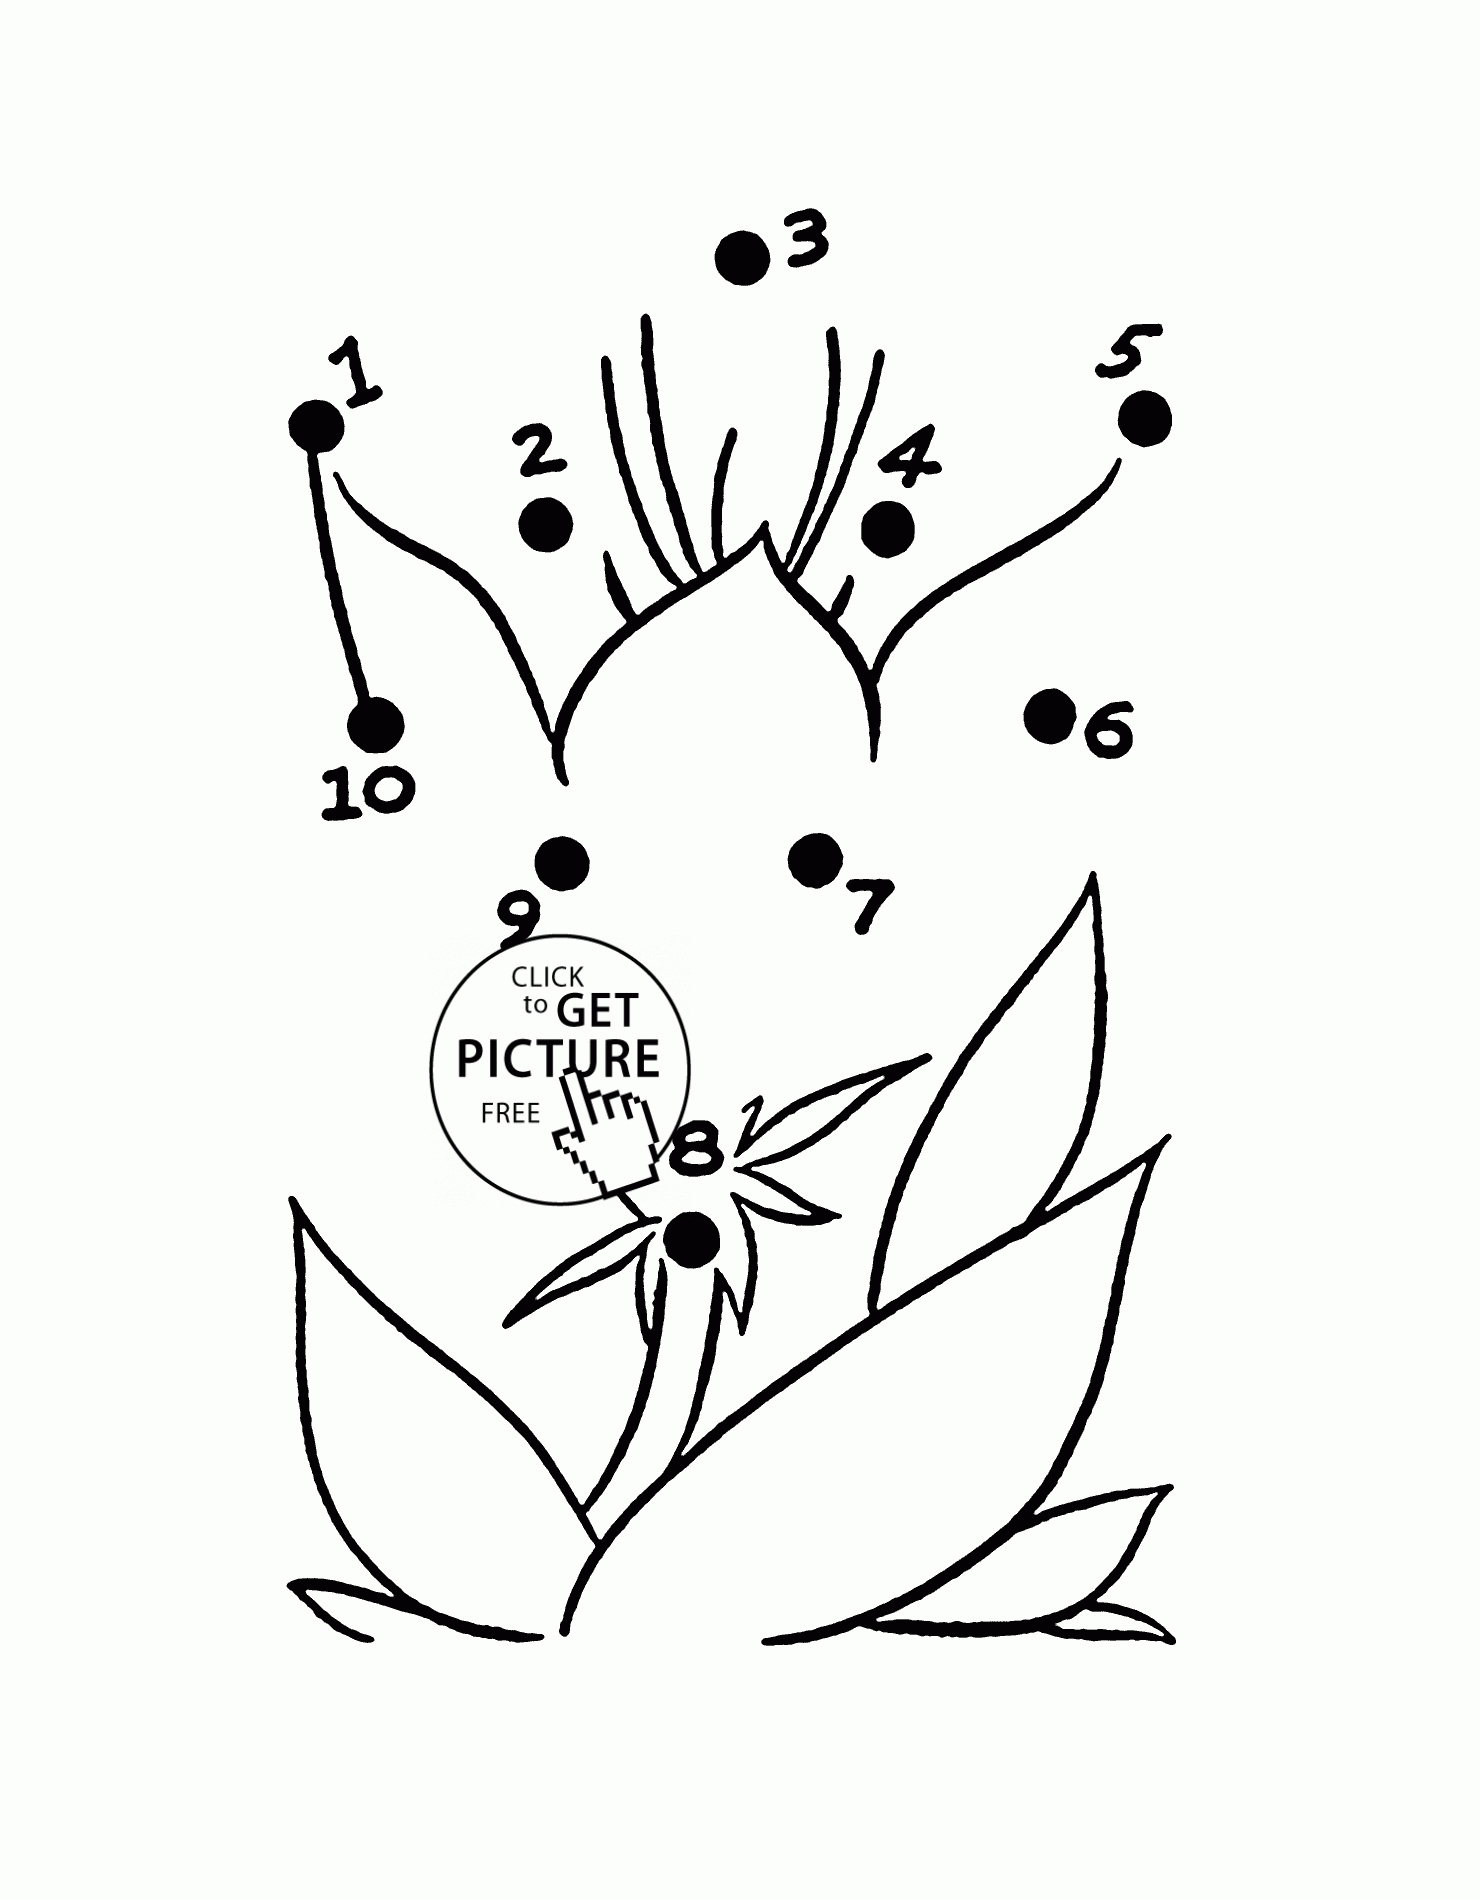 printable princess coloring pages - connect the dots flower flower easy dot to dot coloring pages for preschoolers connect